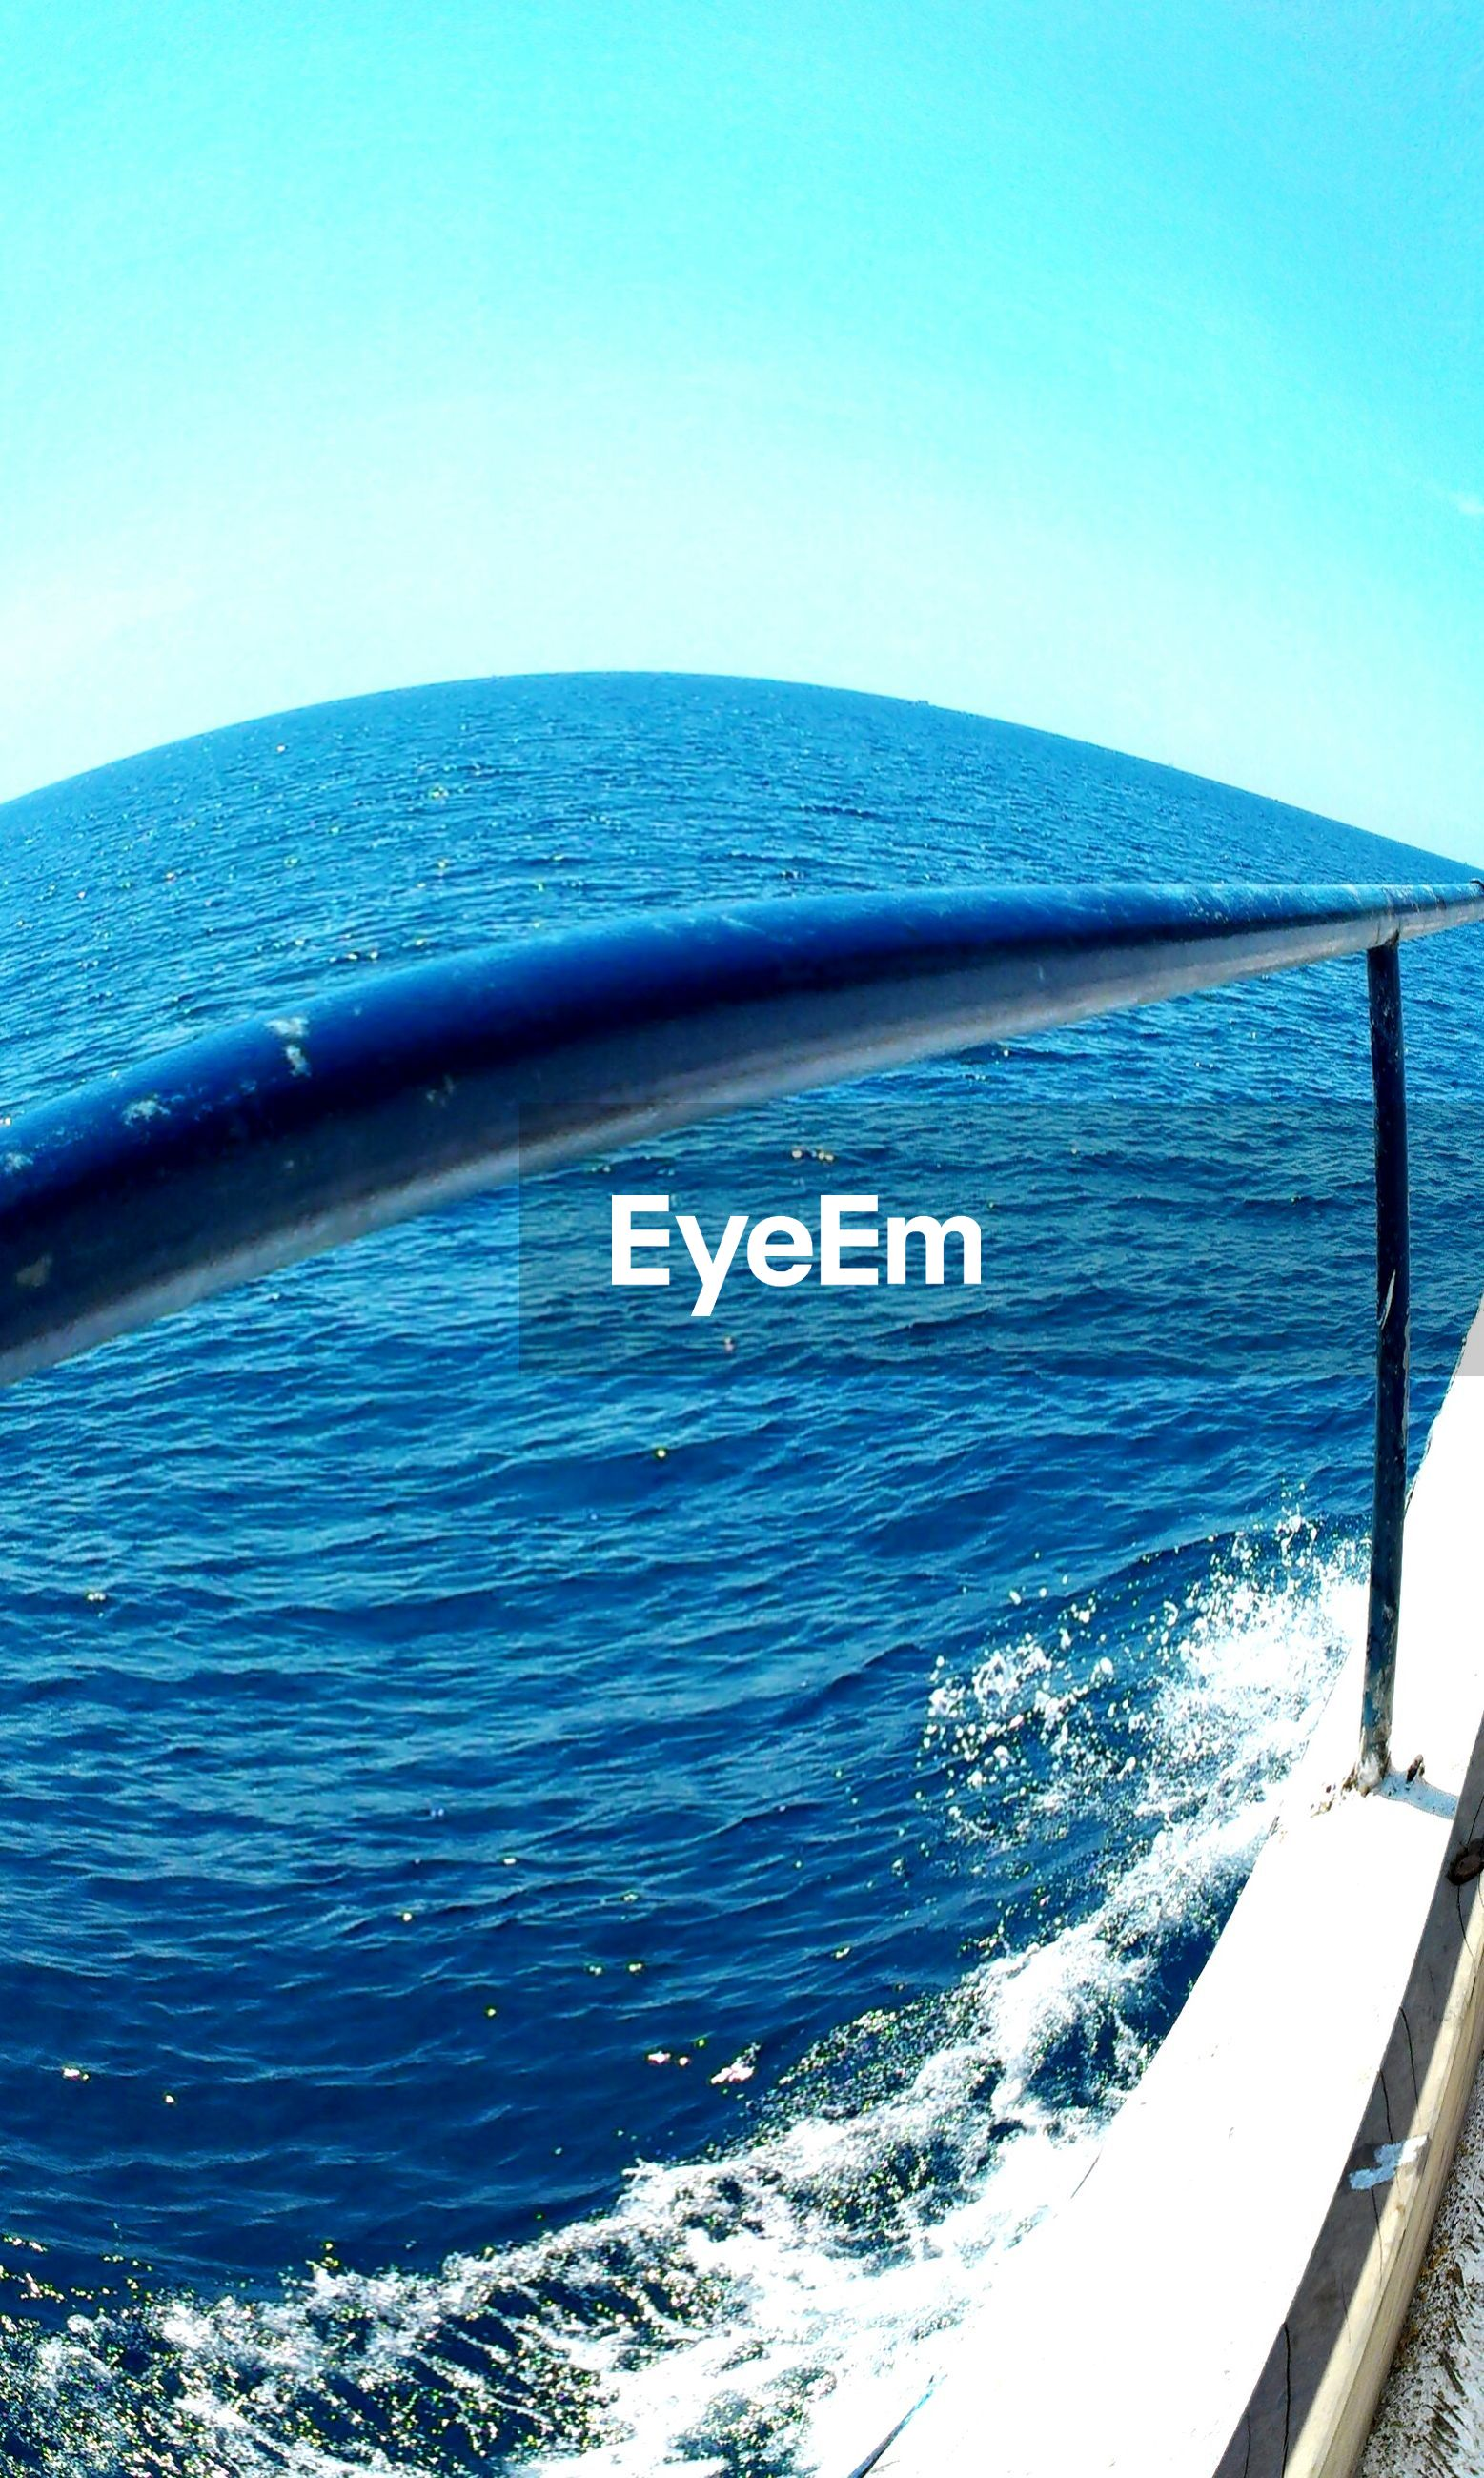 Fish-eye lens of sea and boat railing against clear sky